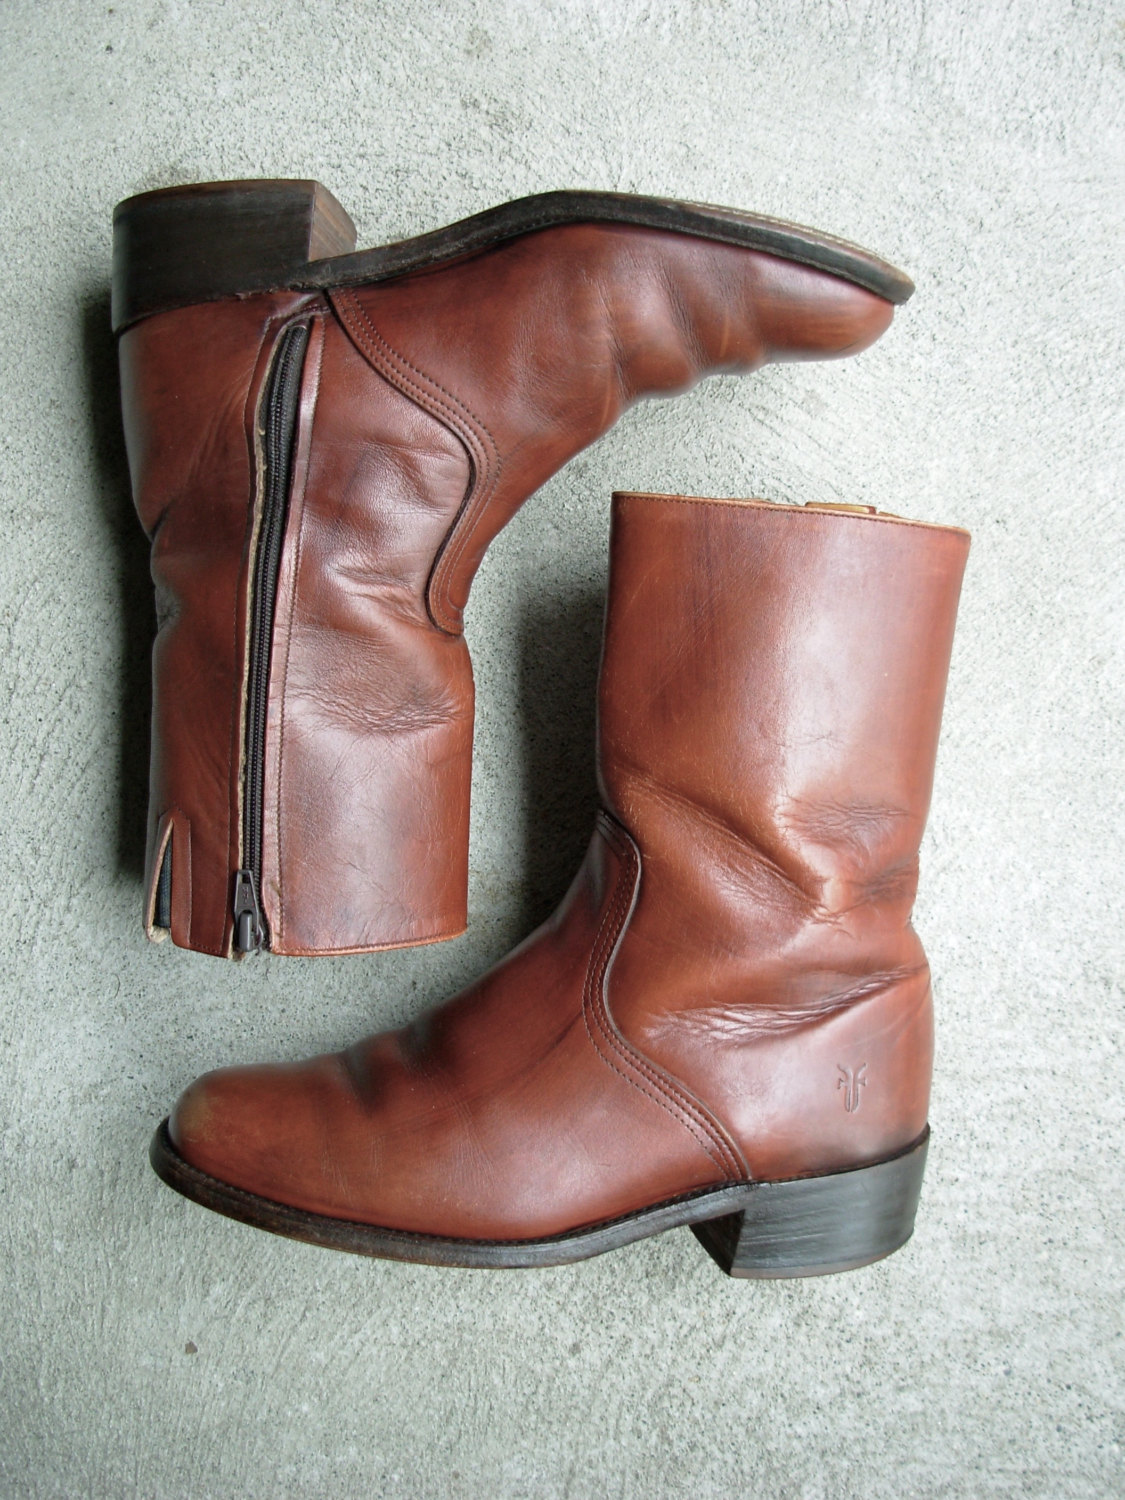 a7f22578f63bd Vintage 70's Frye brown boots, Frye boots, cowboy / motorcycle boots, size  8 / 7.5